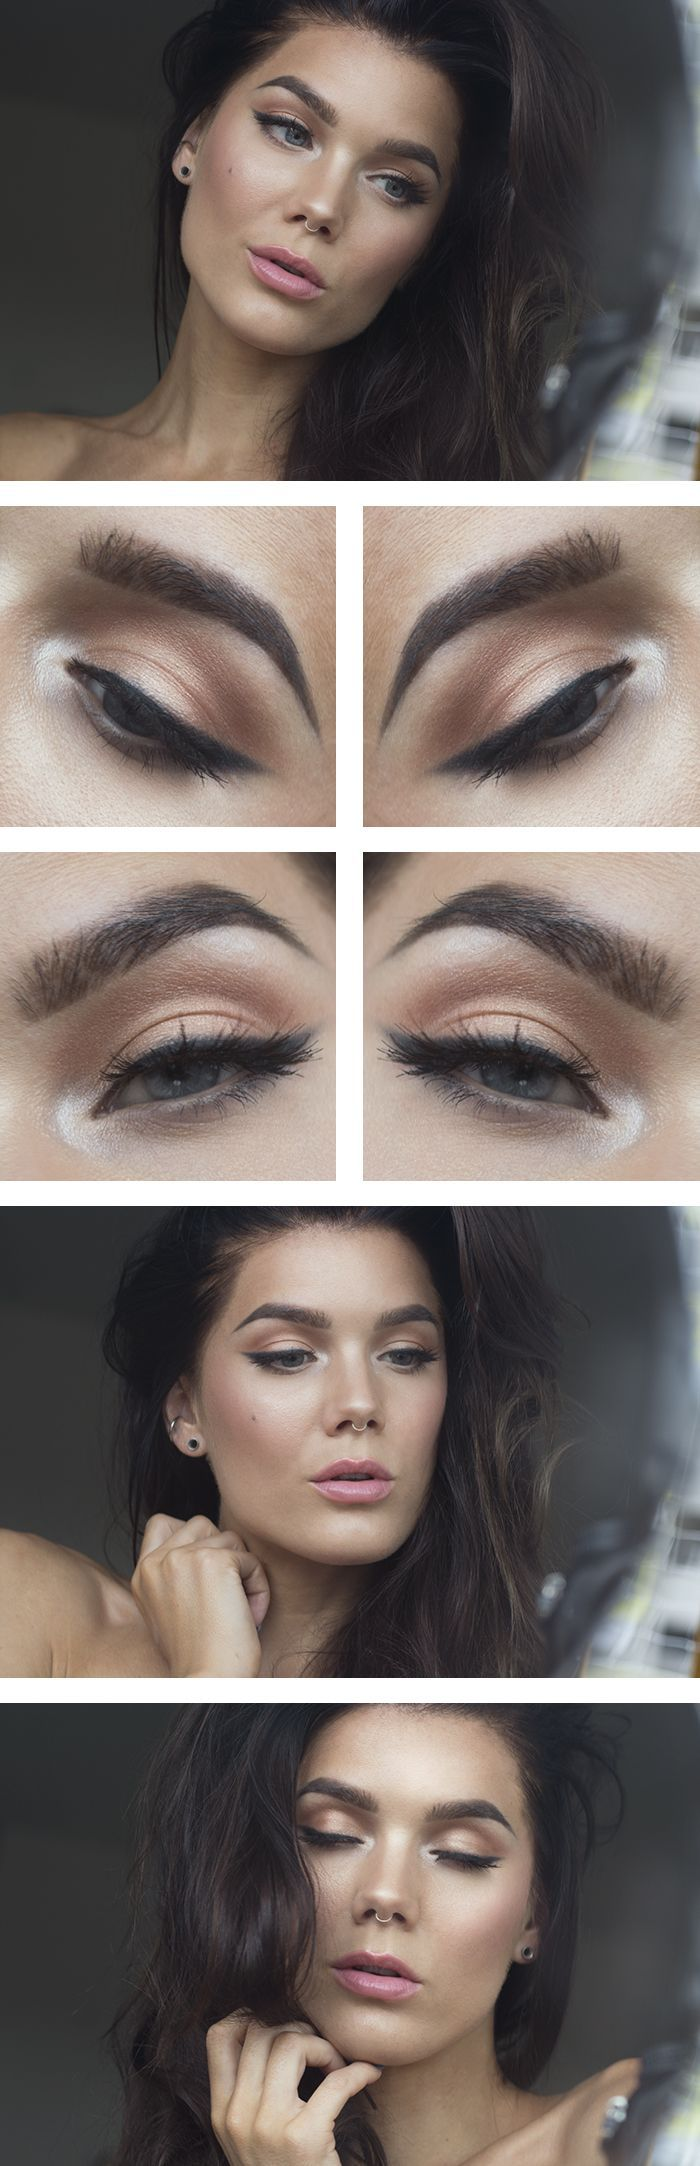 Easy make-up design